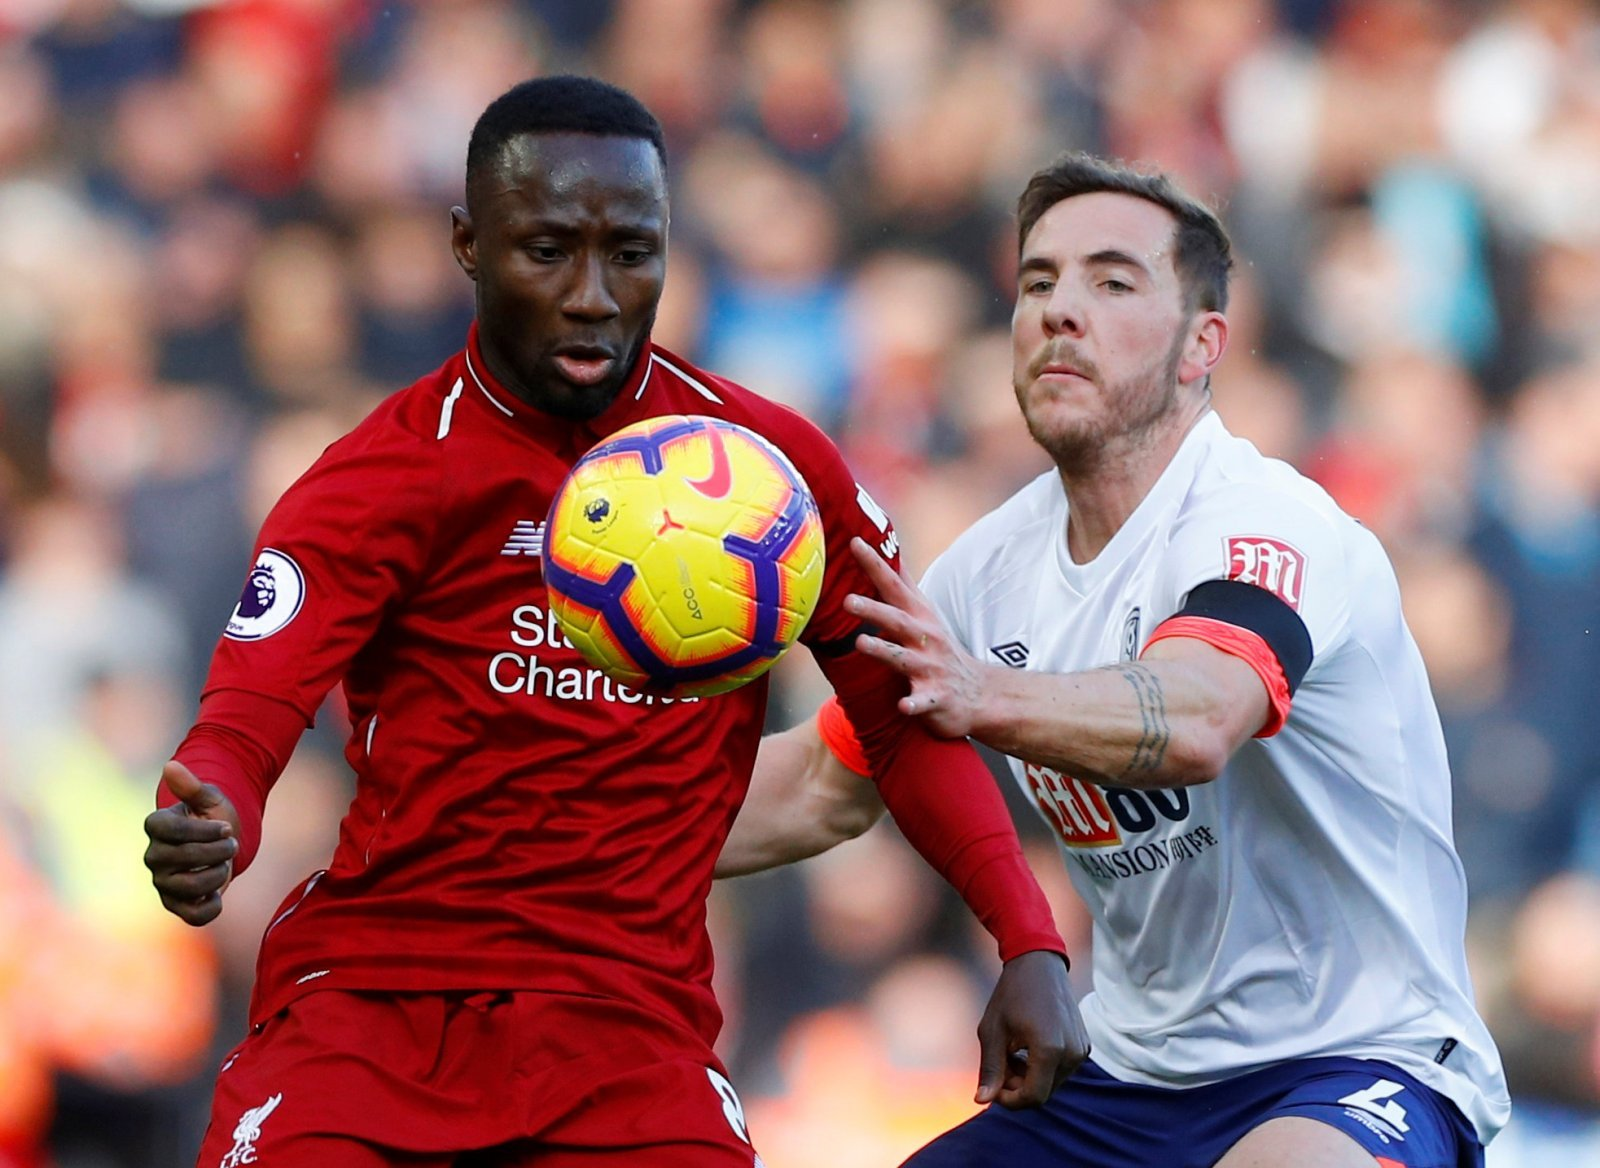 Liverpool: Naby Keita could return from injury in time for Newcastle game on Saturday